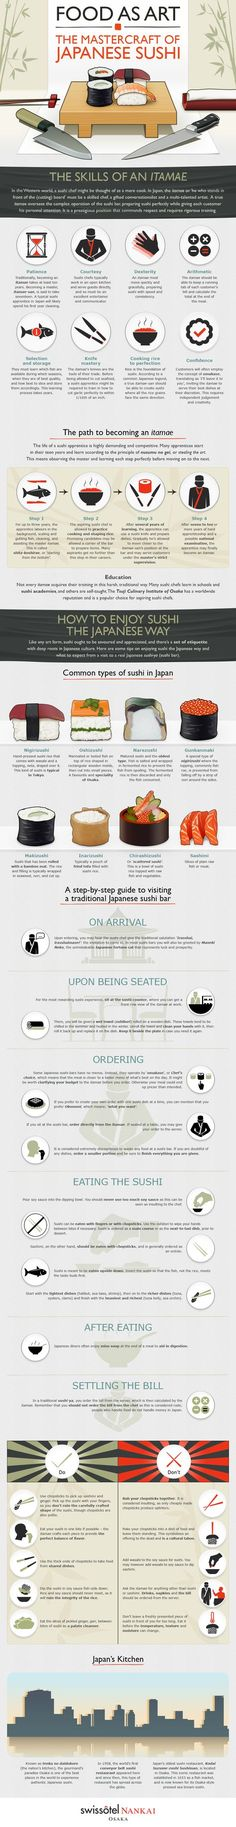 Ever seen Jiro dreams of sushi? Today's infographic is kind of a refresher on the amount of training needed to become a real sushi chef, or Itamae-San. It'll also cover sushi etiquette and traditional aspects of the sushi culture.